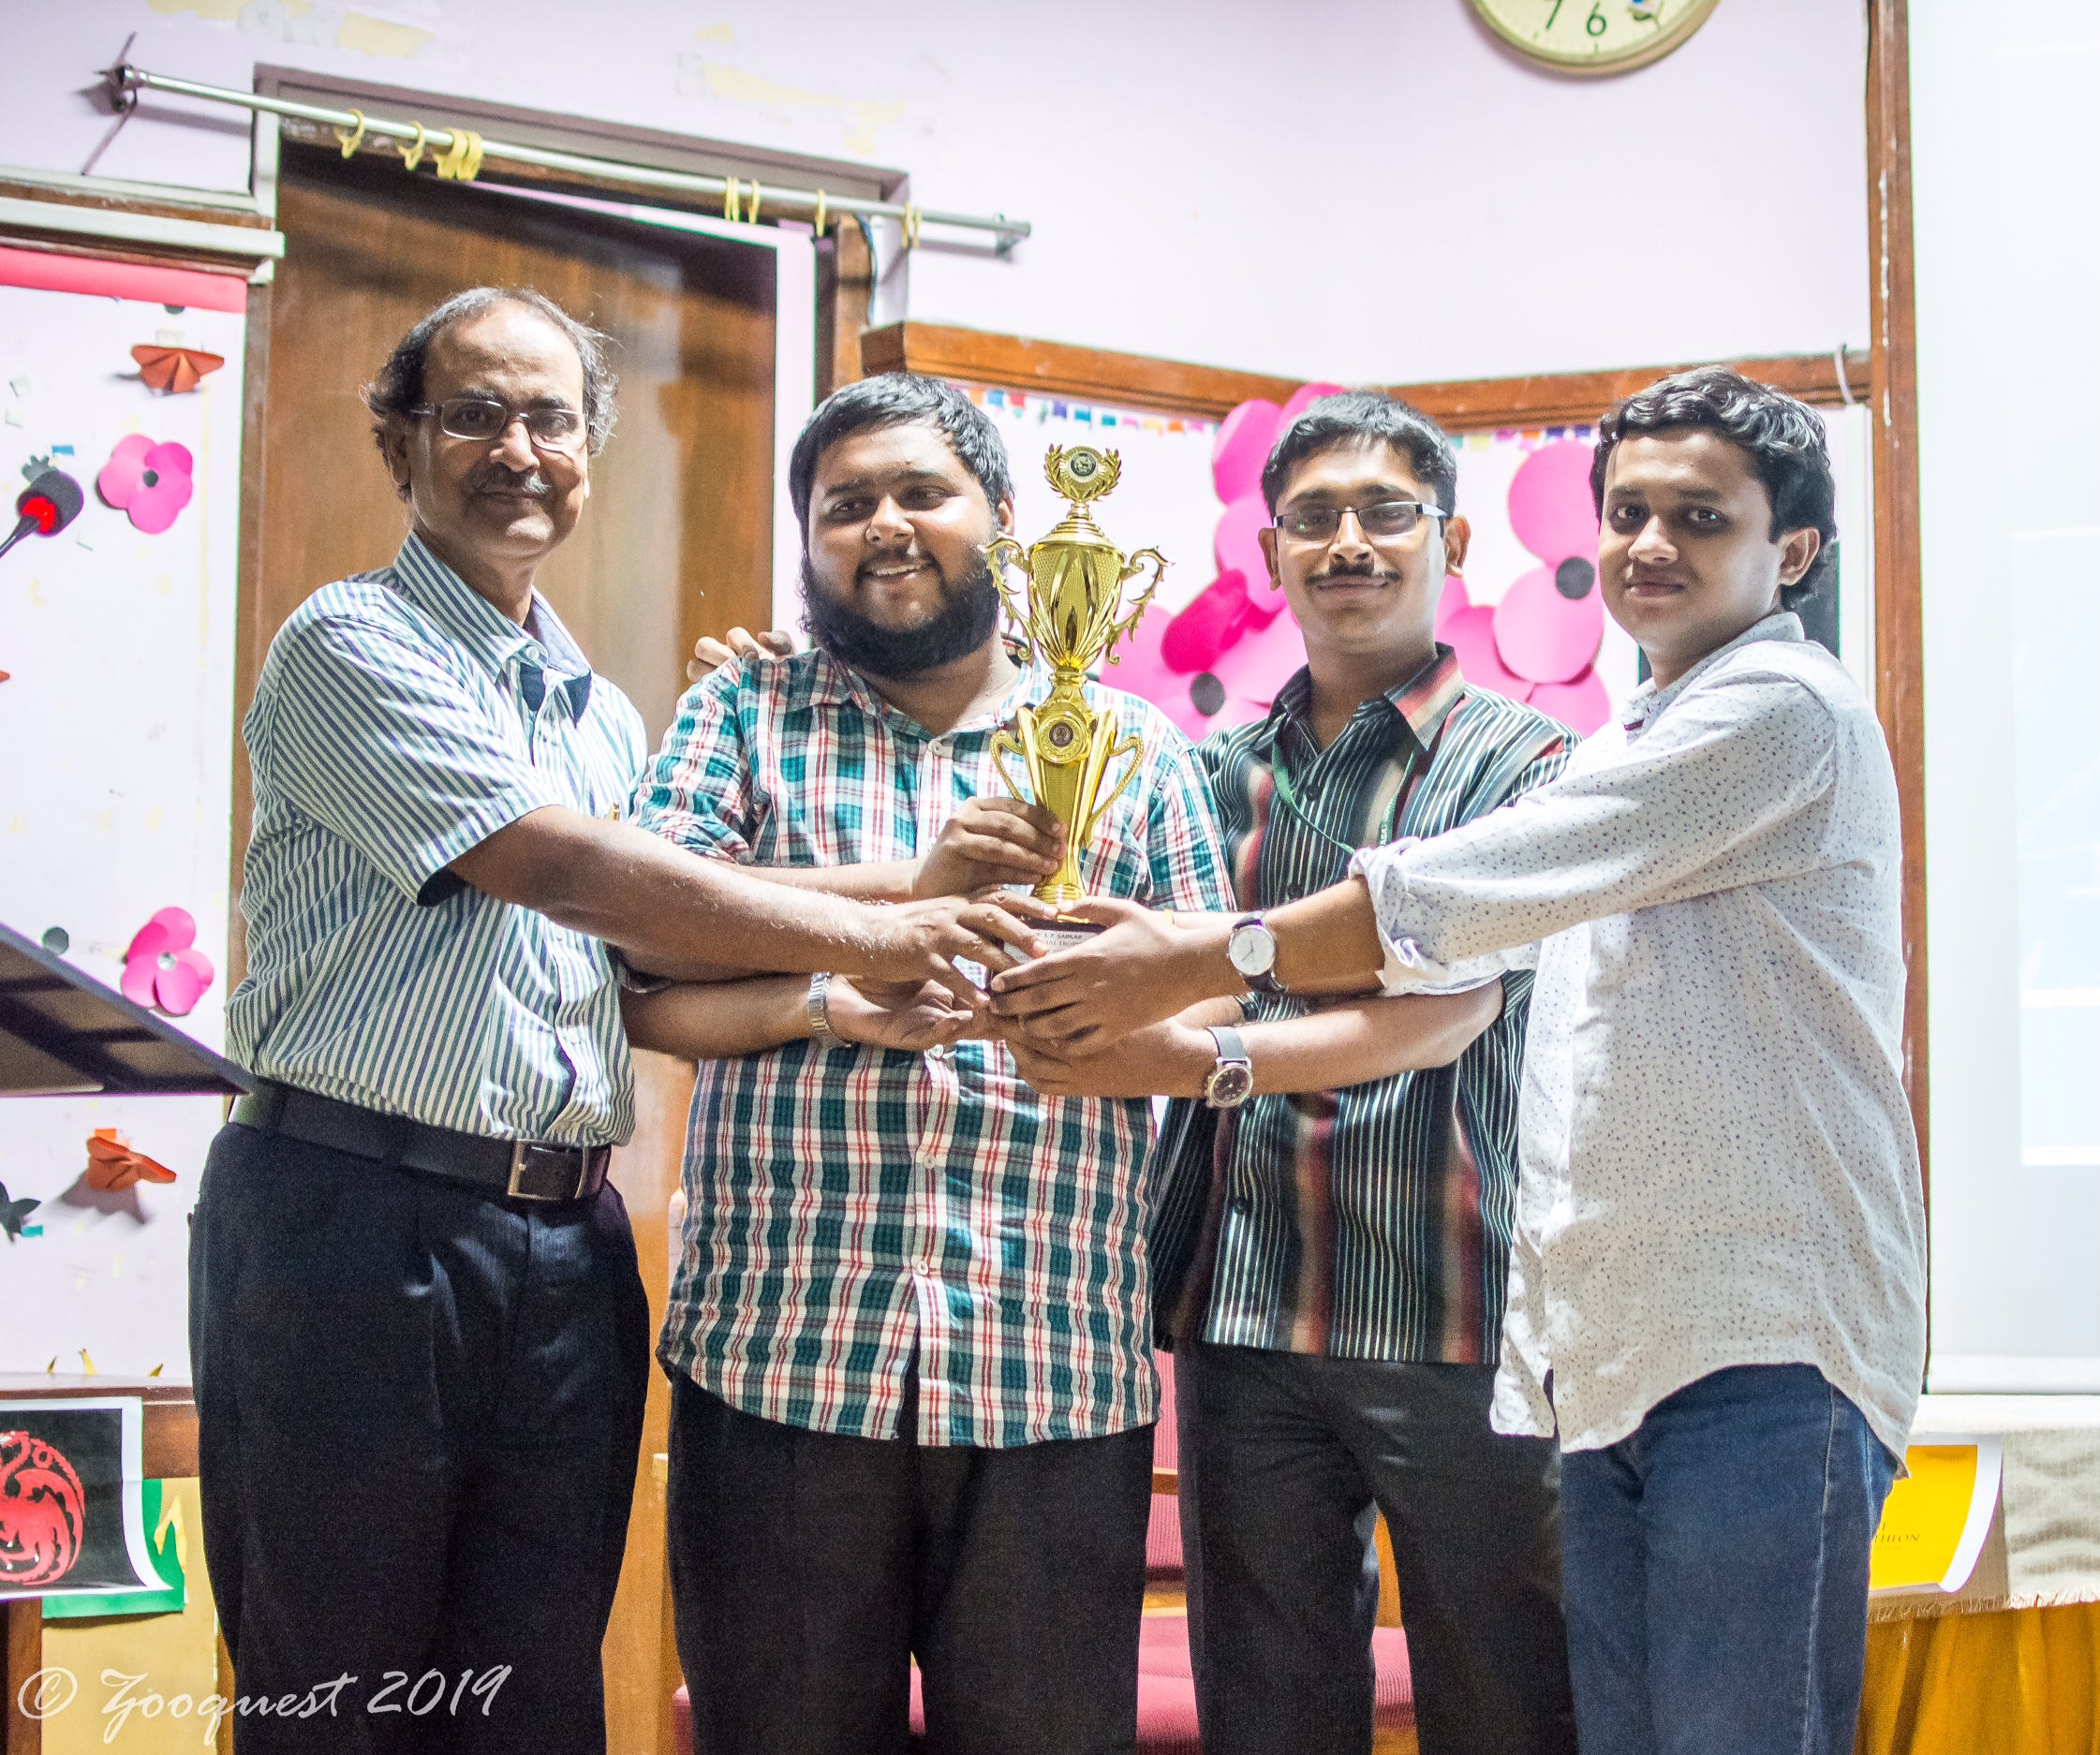 Pradipta Kr Ghosh, Kaustav Bhattacharjee & Subhradip Pandit, M.Sc. Students, PG Dept. Of Zoology, Barasat Govt College: Winner (1st prize) Of PG (quiz) 2019, at Zooquest 2019